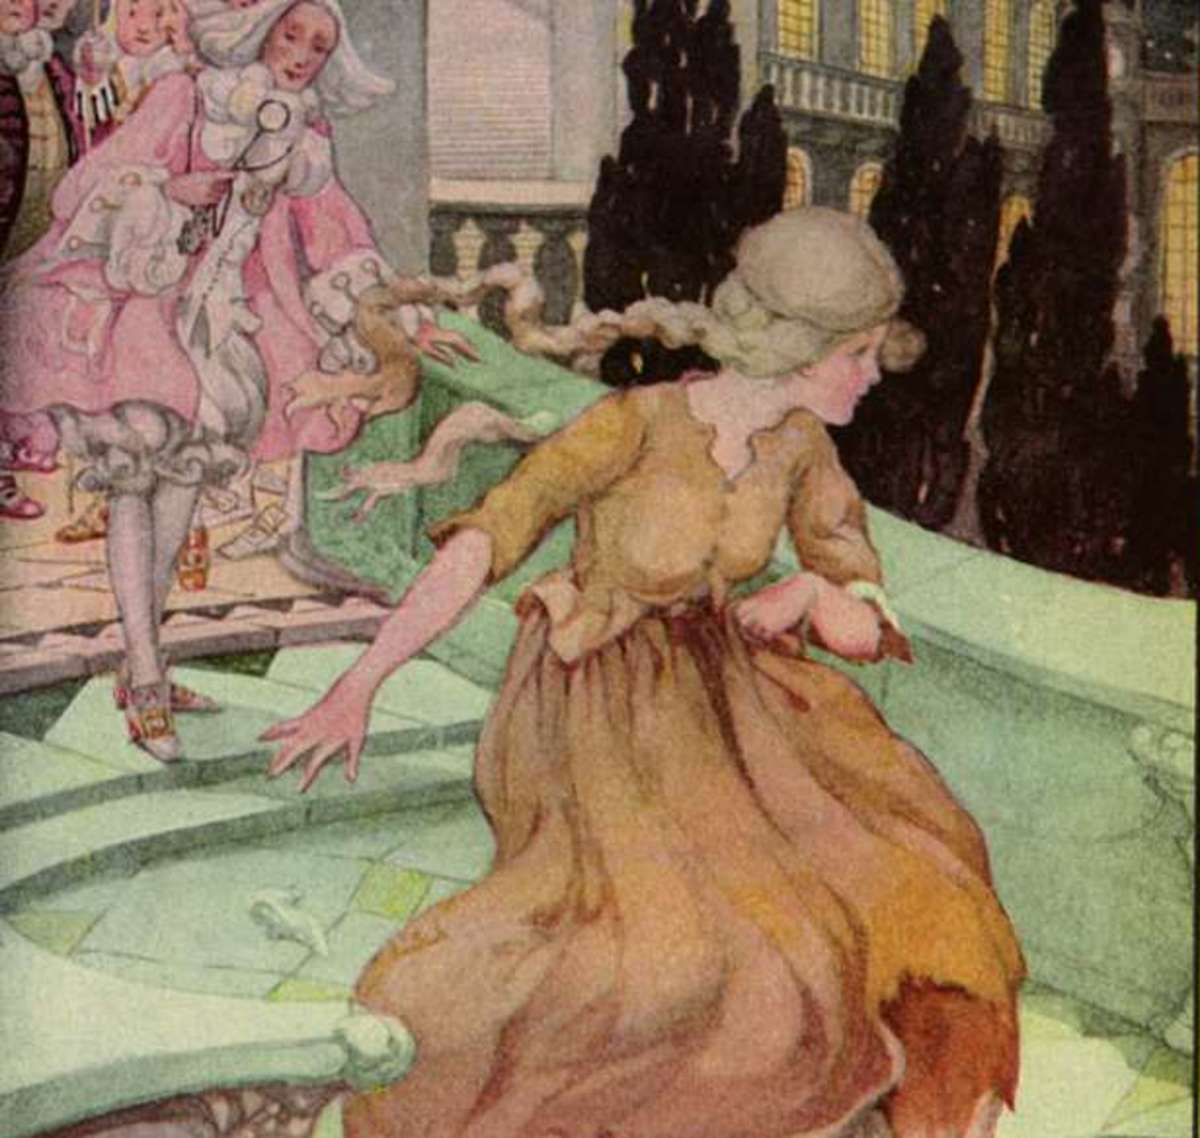 Cinderella running away, illustrated by Anne Anderson